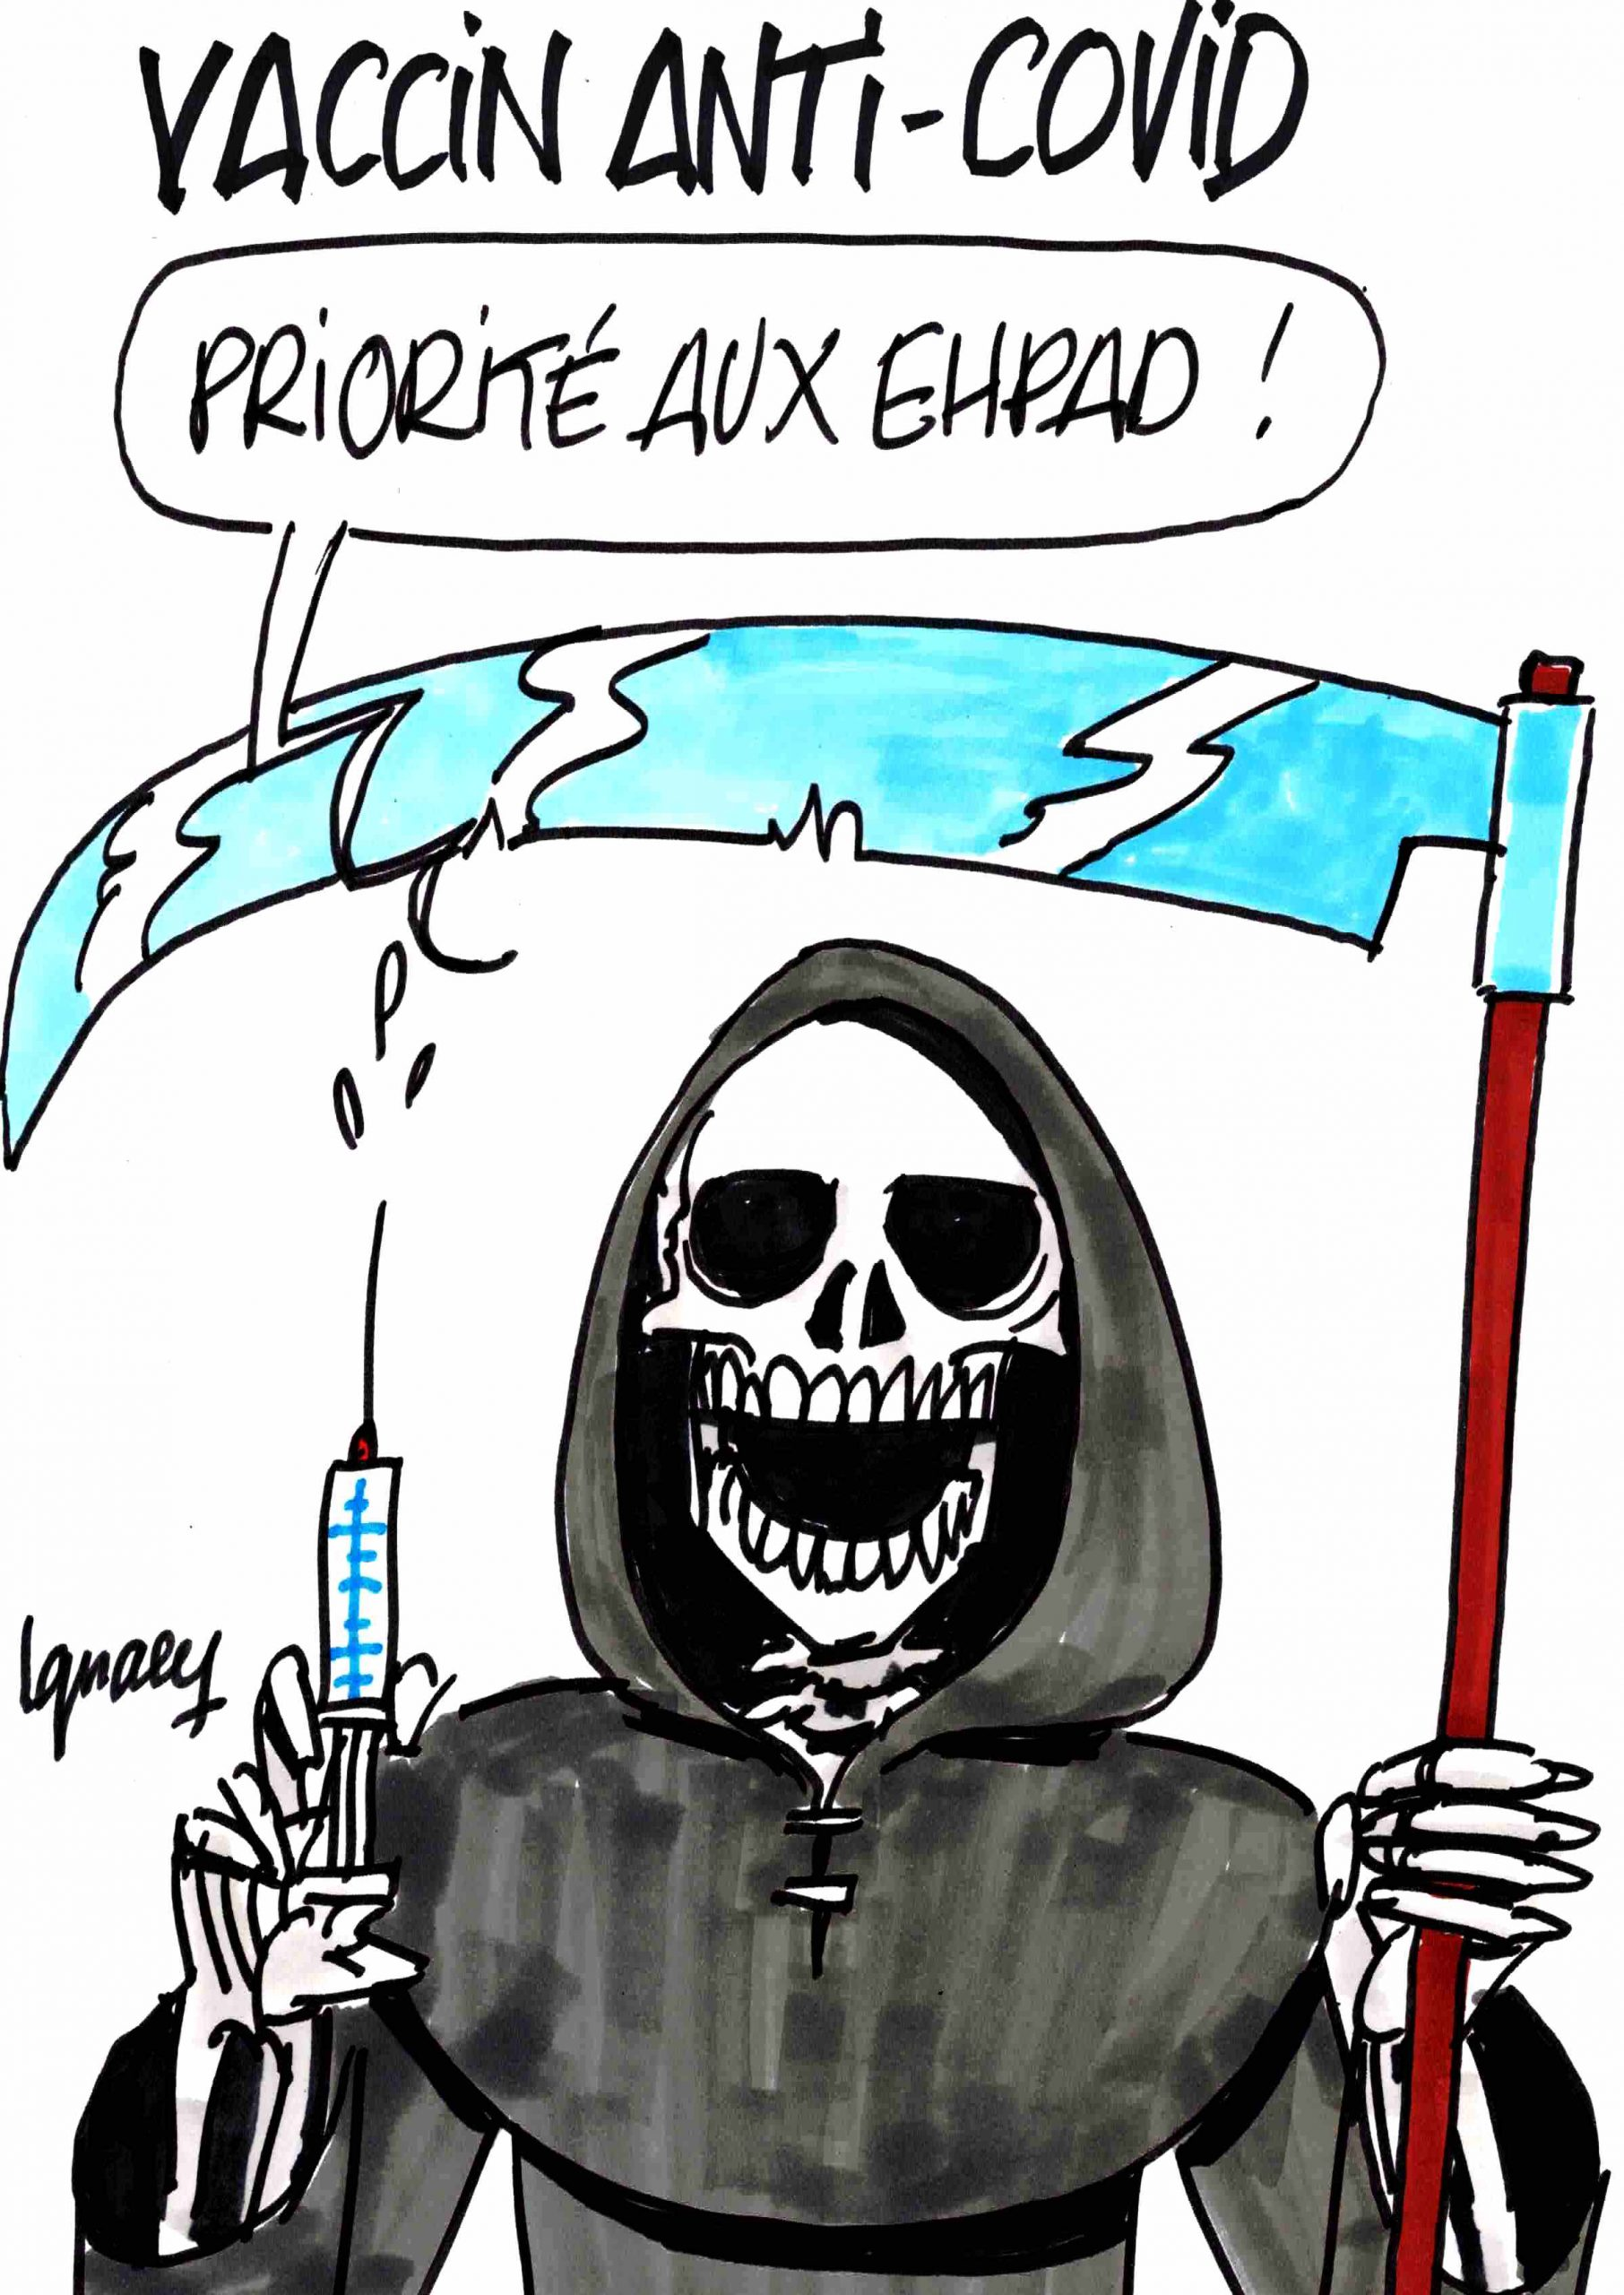 Ignace - Le vaccin anti-covid arrive !